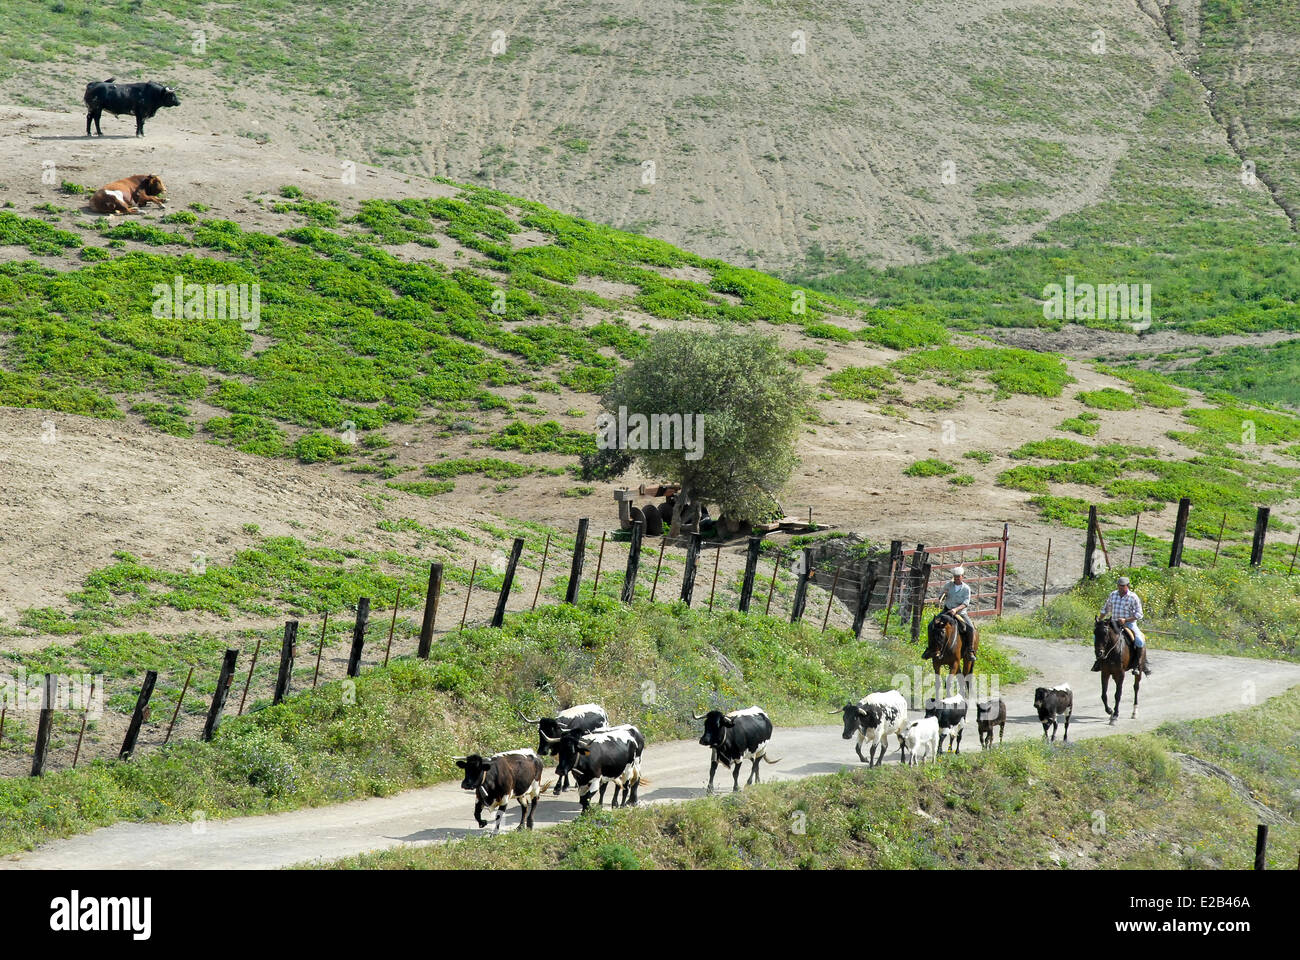 Spain, Andalucia, Almonte, Cortijo los Mimbrales, breeding bull fighting, two men on horseback carrying cows and - Stock Image